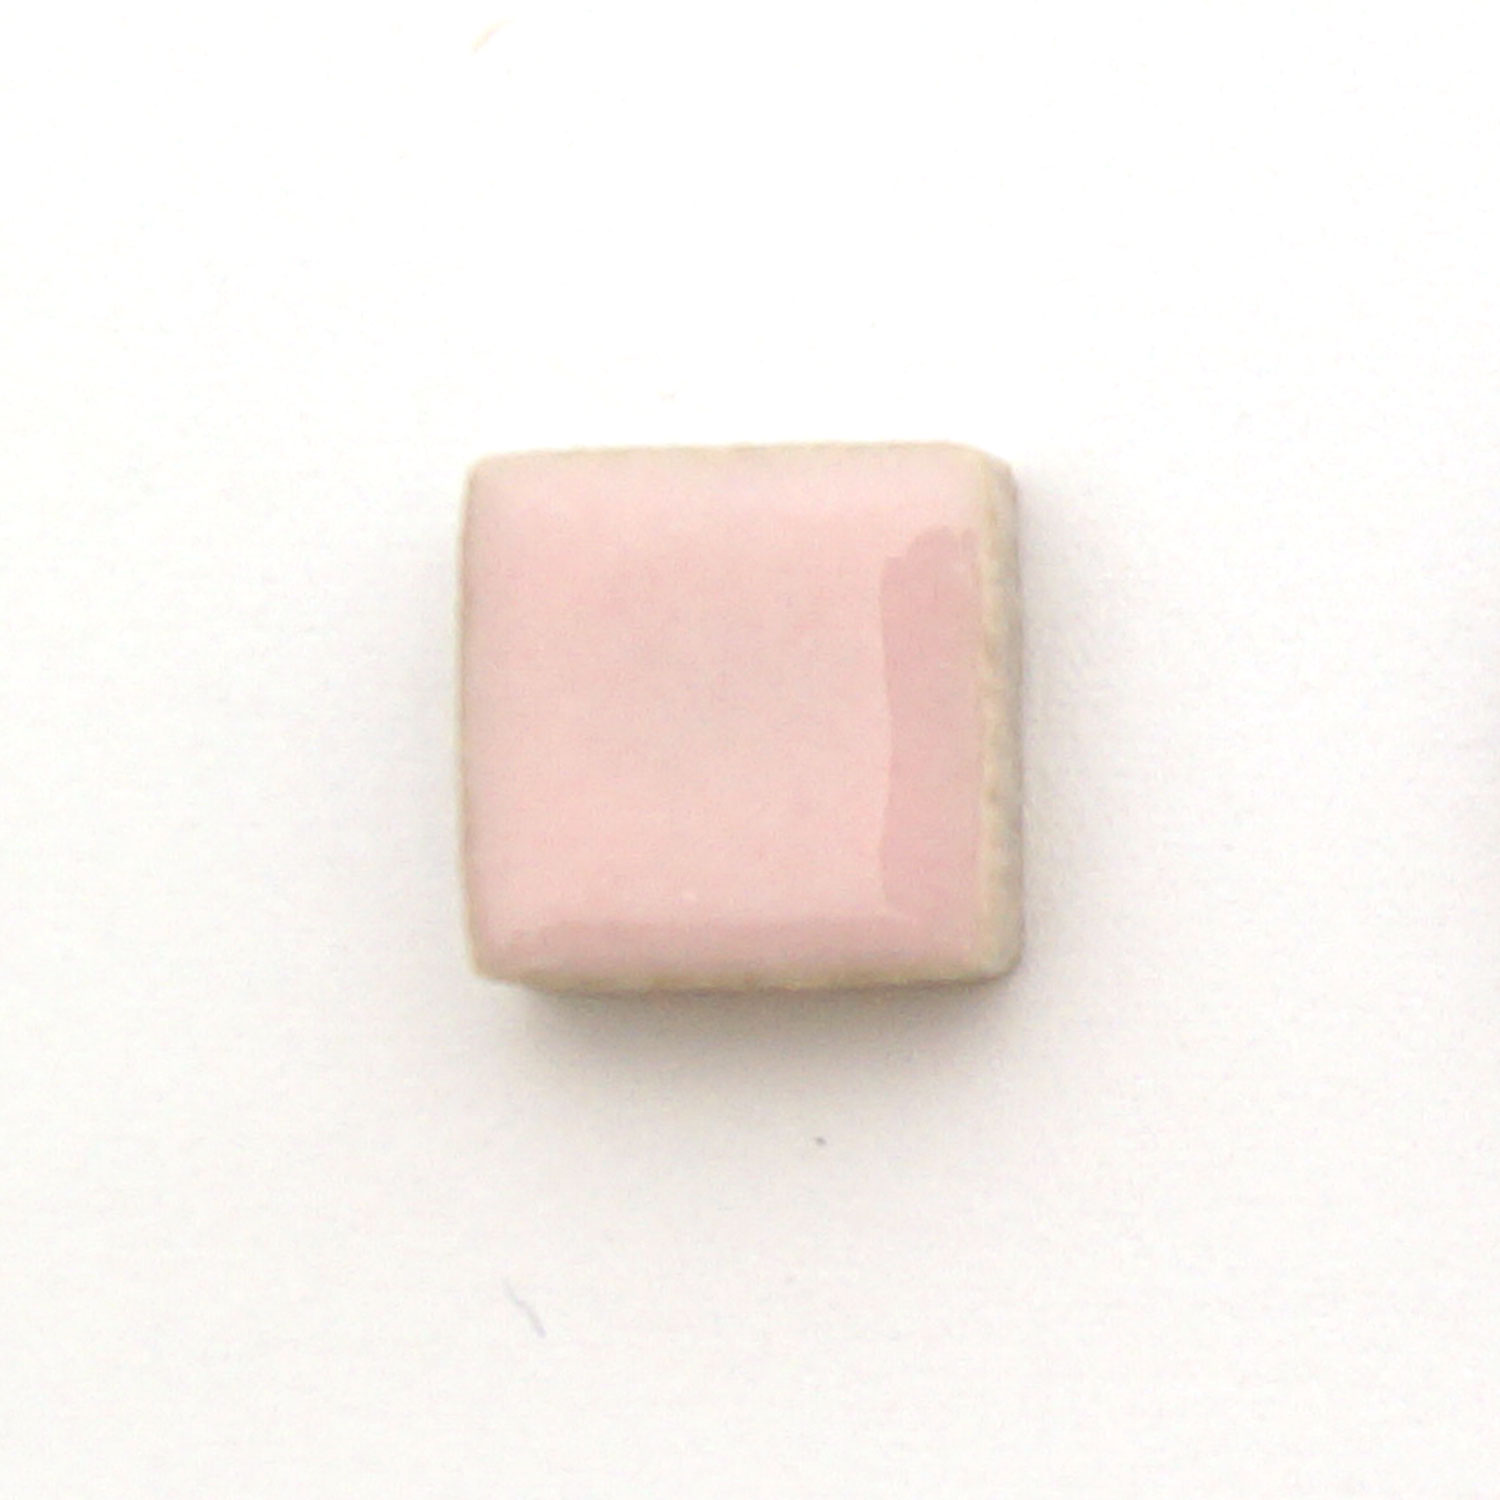 38 pink ceramic tile 1 lb stone delphi glass 38 pink ceramic tile 1 lb 2184051 thumbnail image 2184052 thumbnail image 2184053 thumbnail image dailygadgetfo Choice Image